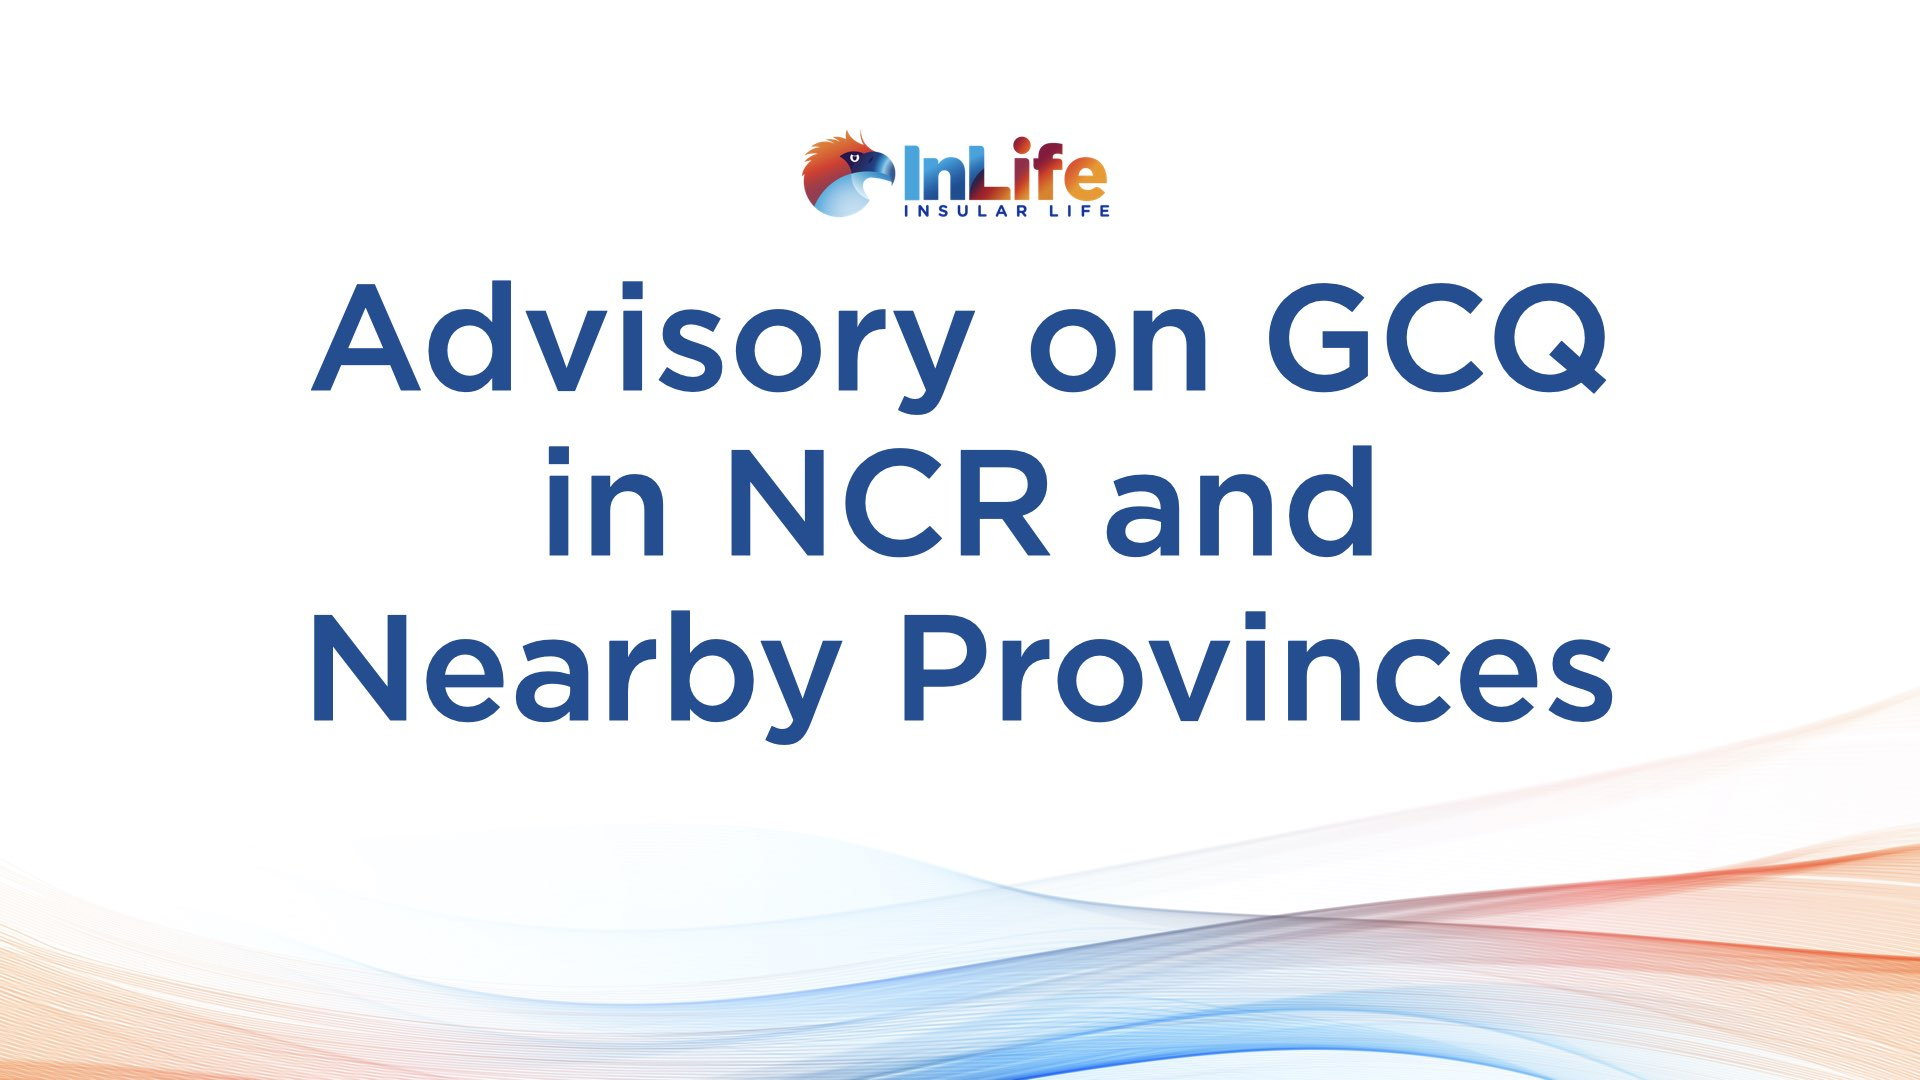 InLife Advisory on Return to GCQ of NCR and Nearby Provinces